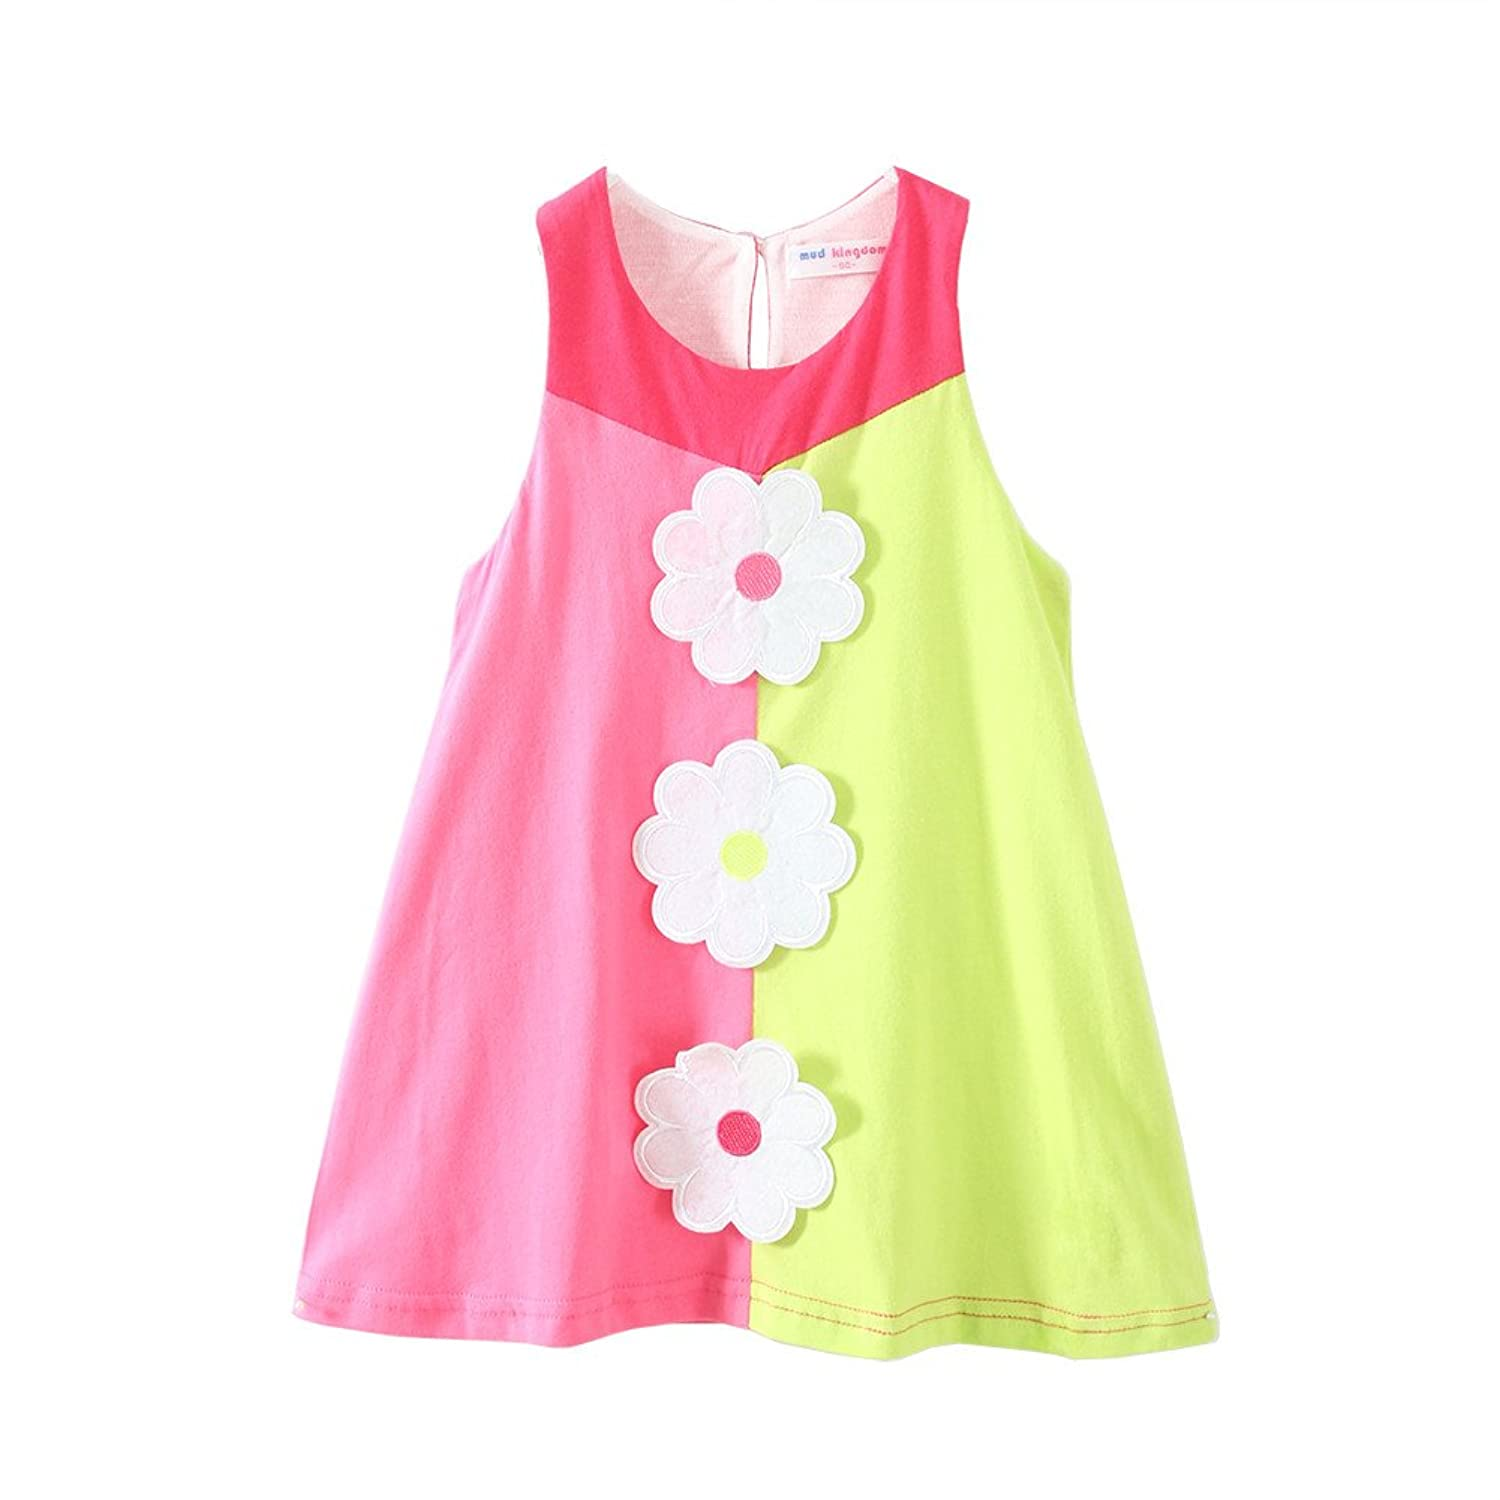 Mud Kingdom Little Girls Dresses Holiday Summer Flower Patchwork - Click Image to Close